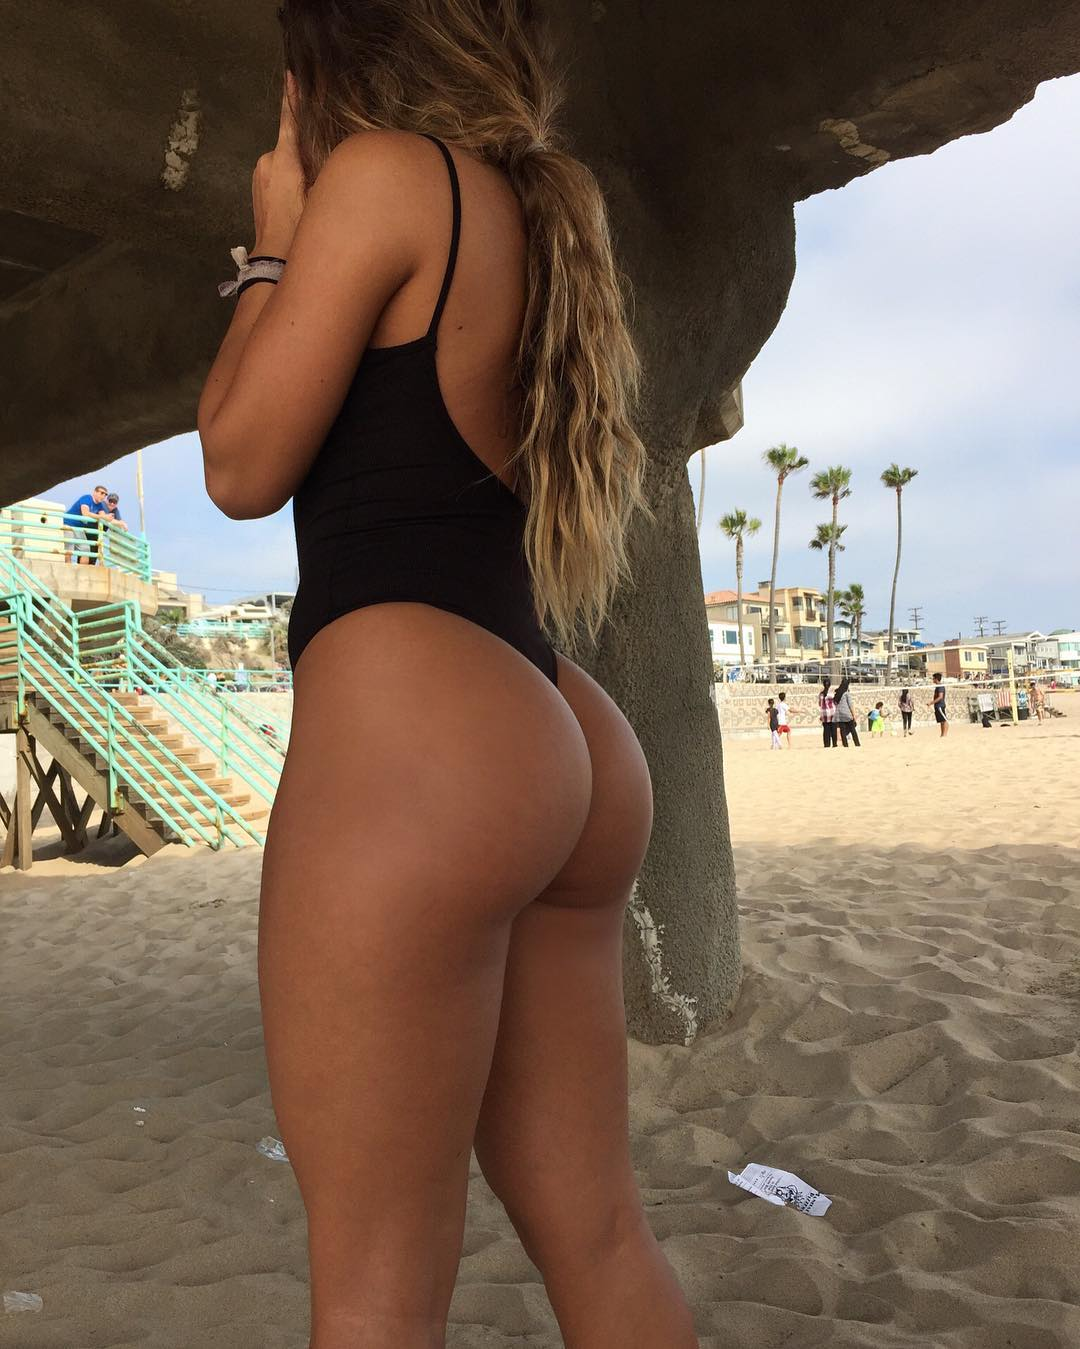 sommer_ray-4